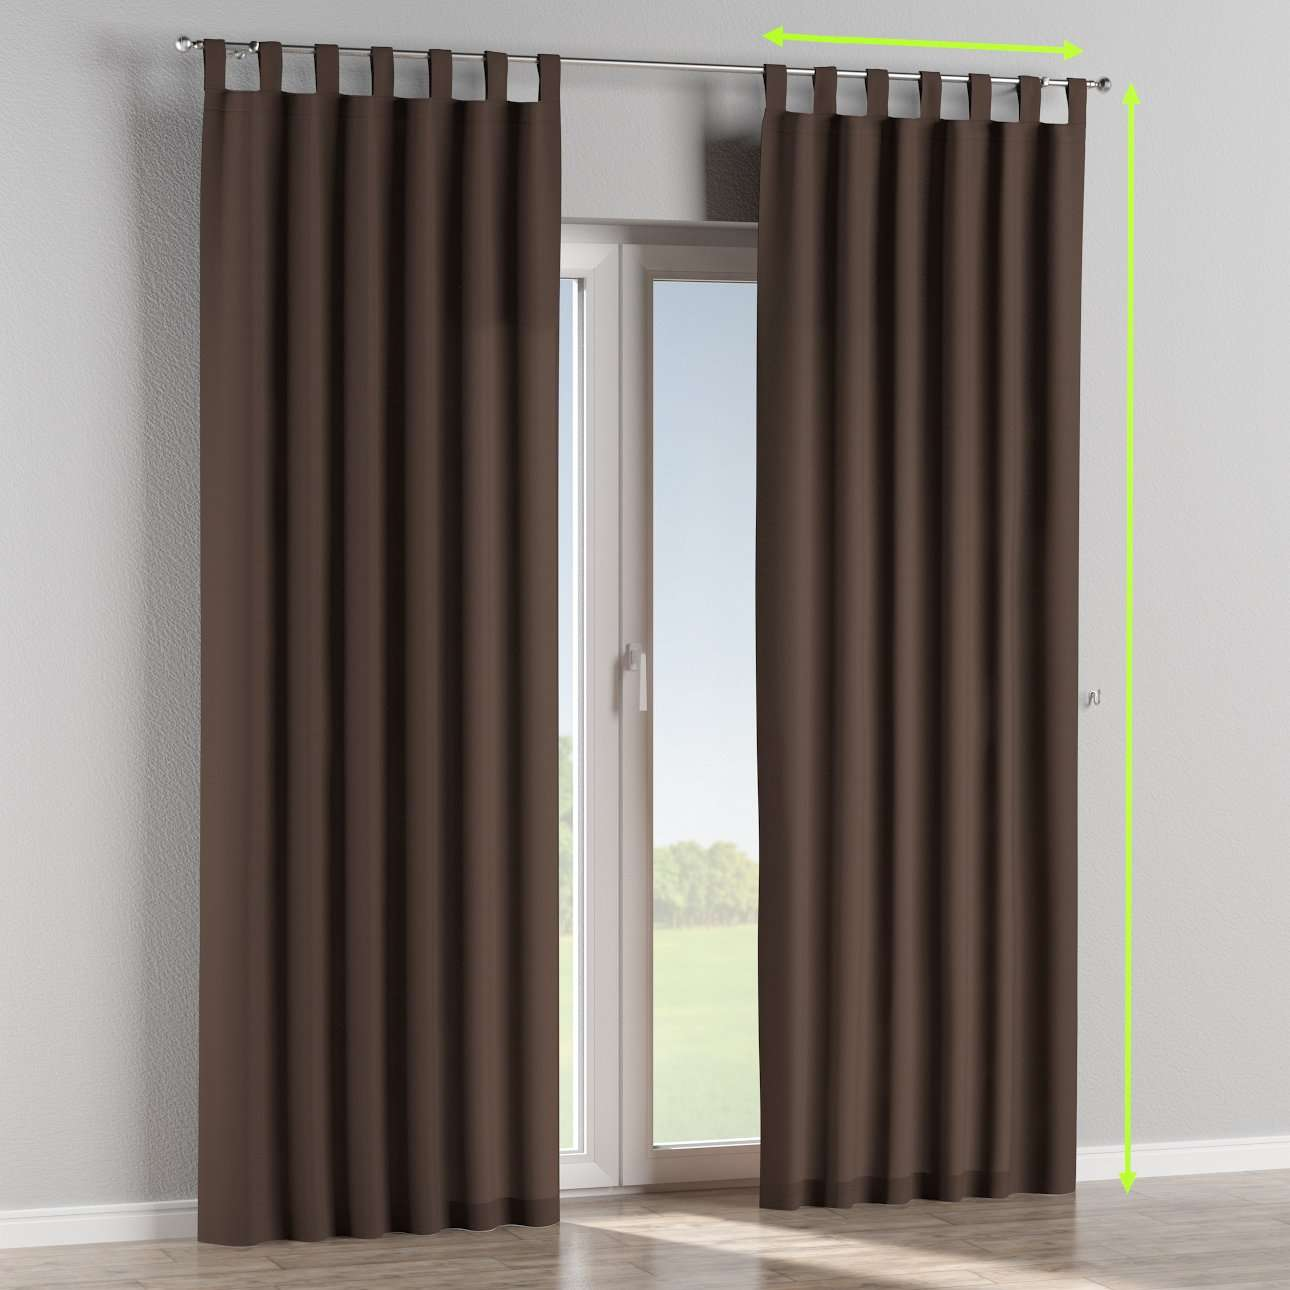 Tab top curtains in collection Cotton Panama, fabric: 702-03